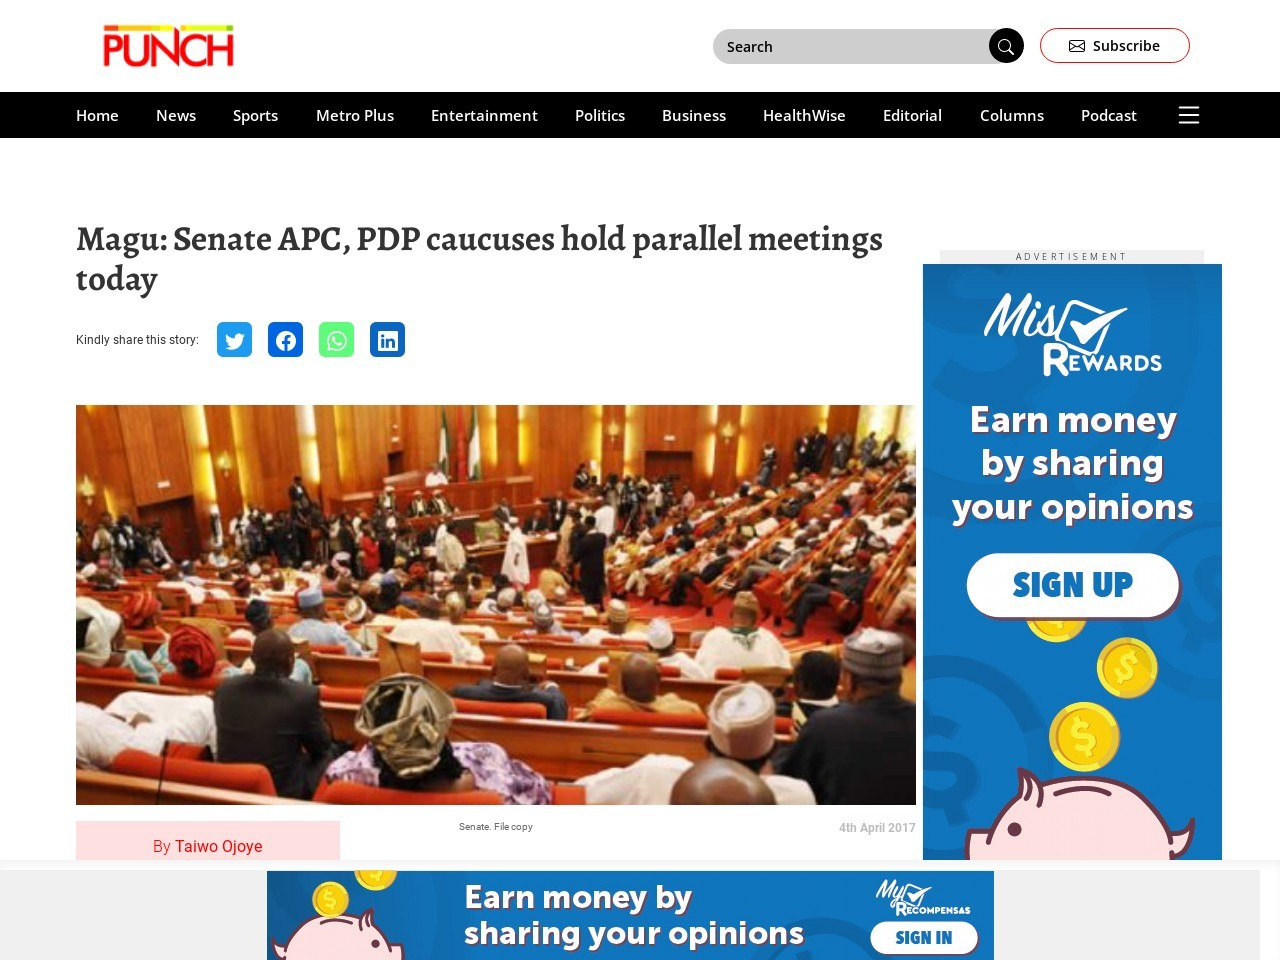 Magu: Senate APC, PDP caucuses hold parallel meetings today